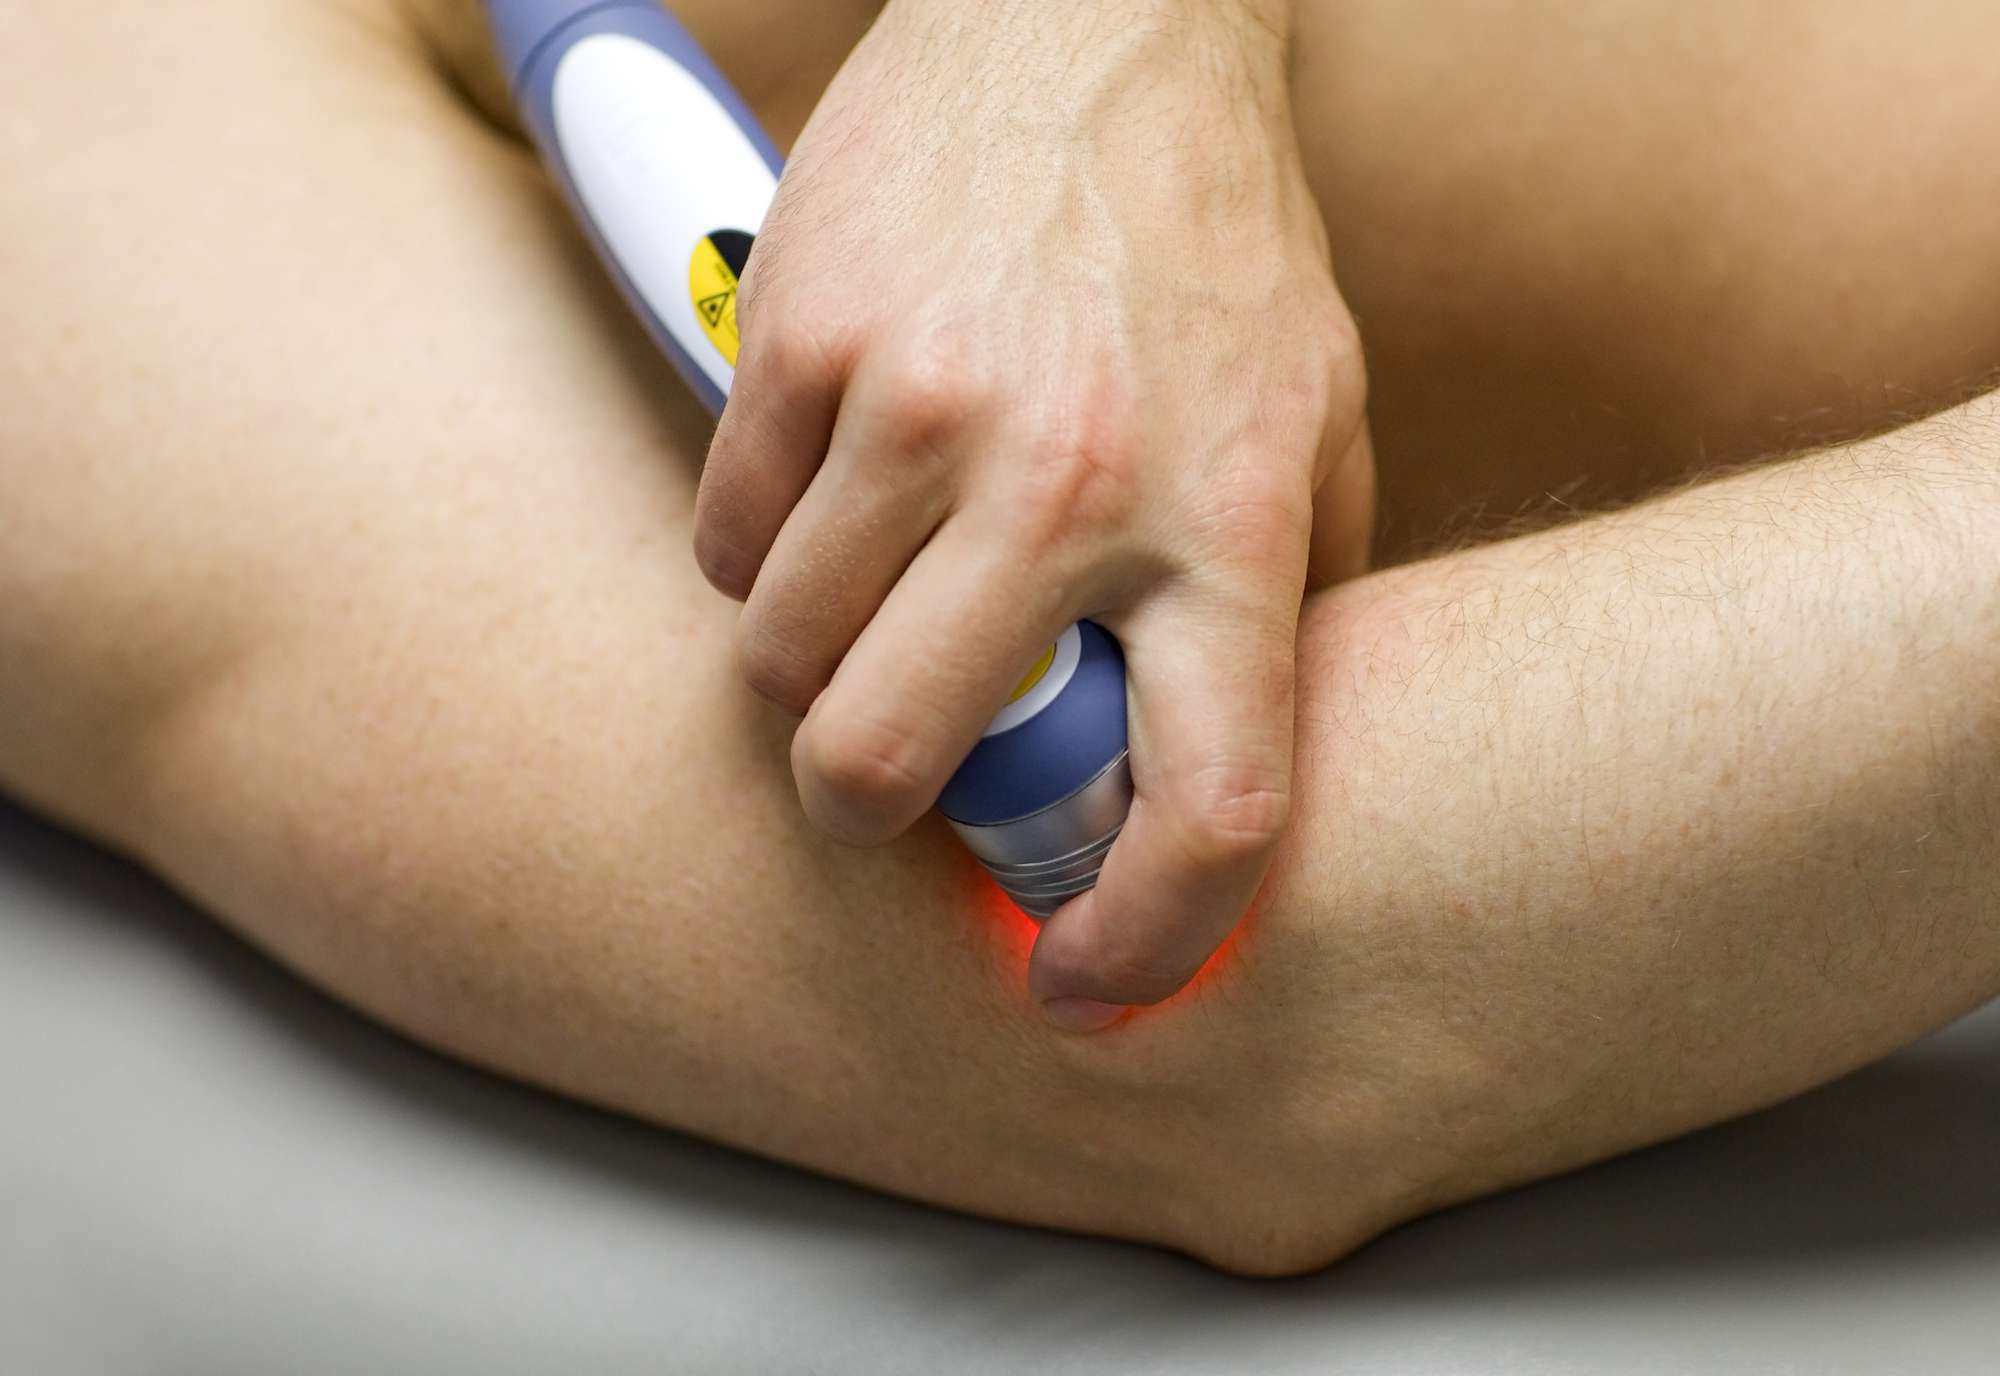 Laser therapy on an elbow